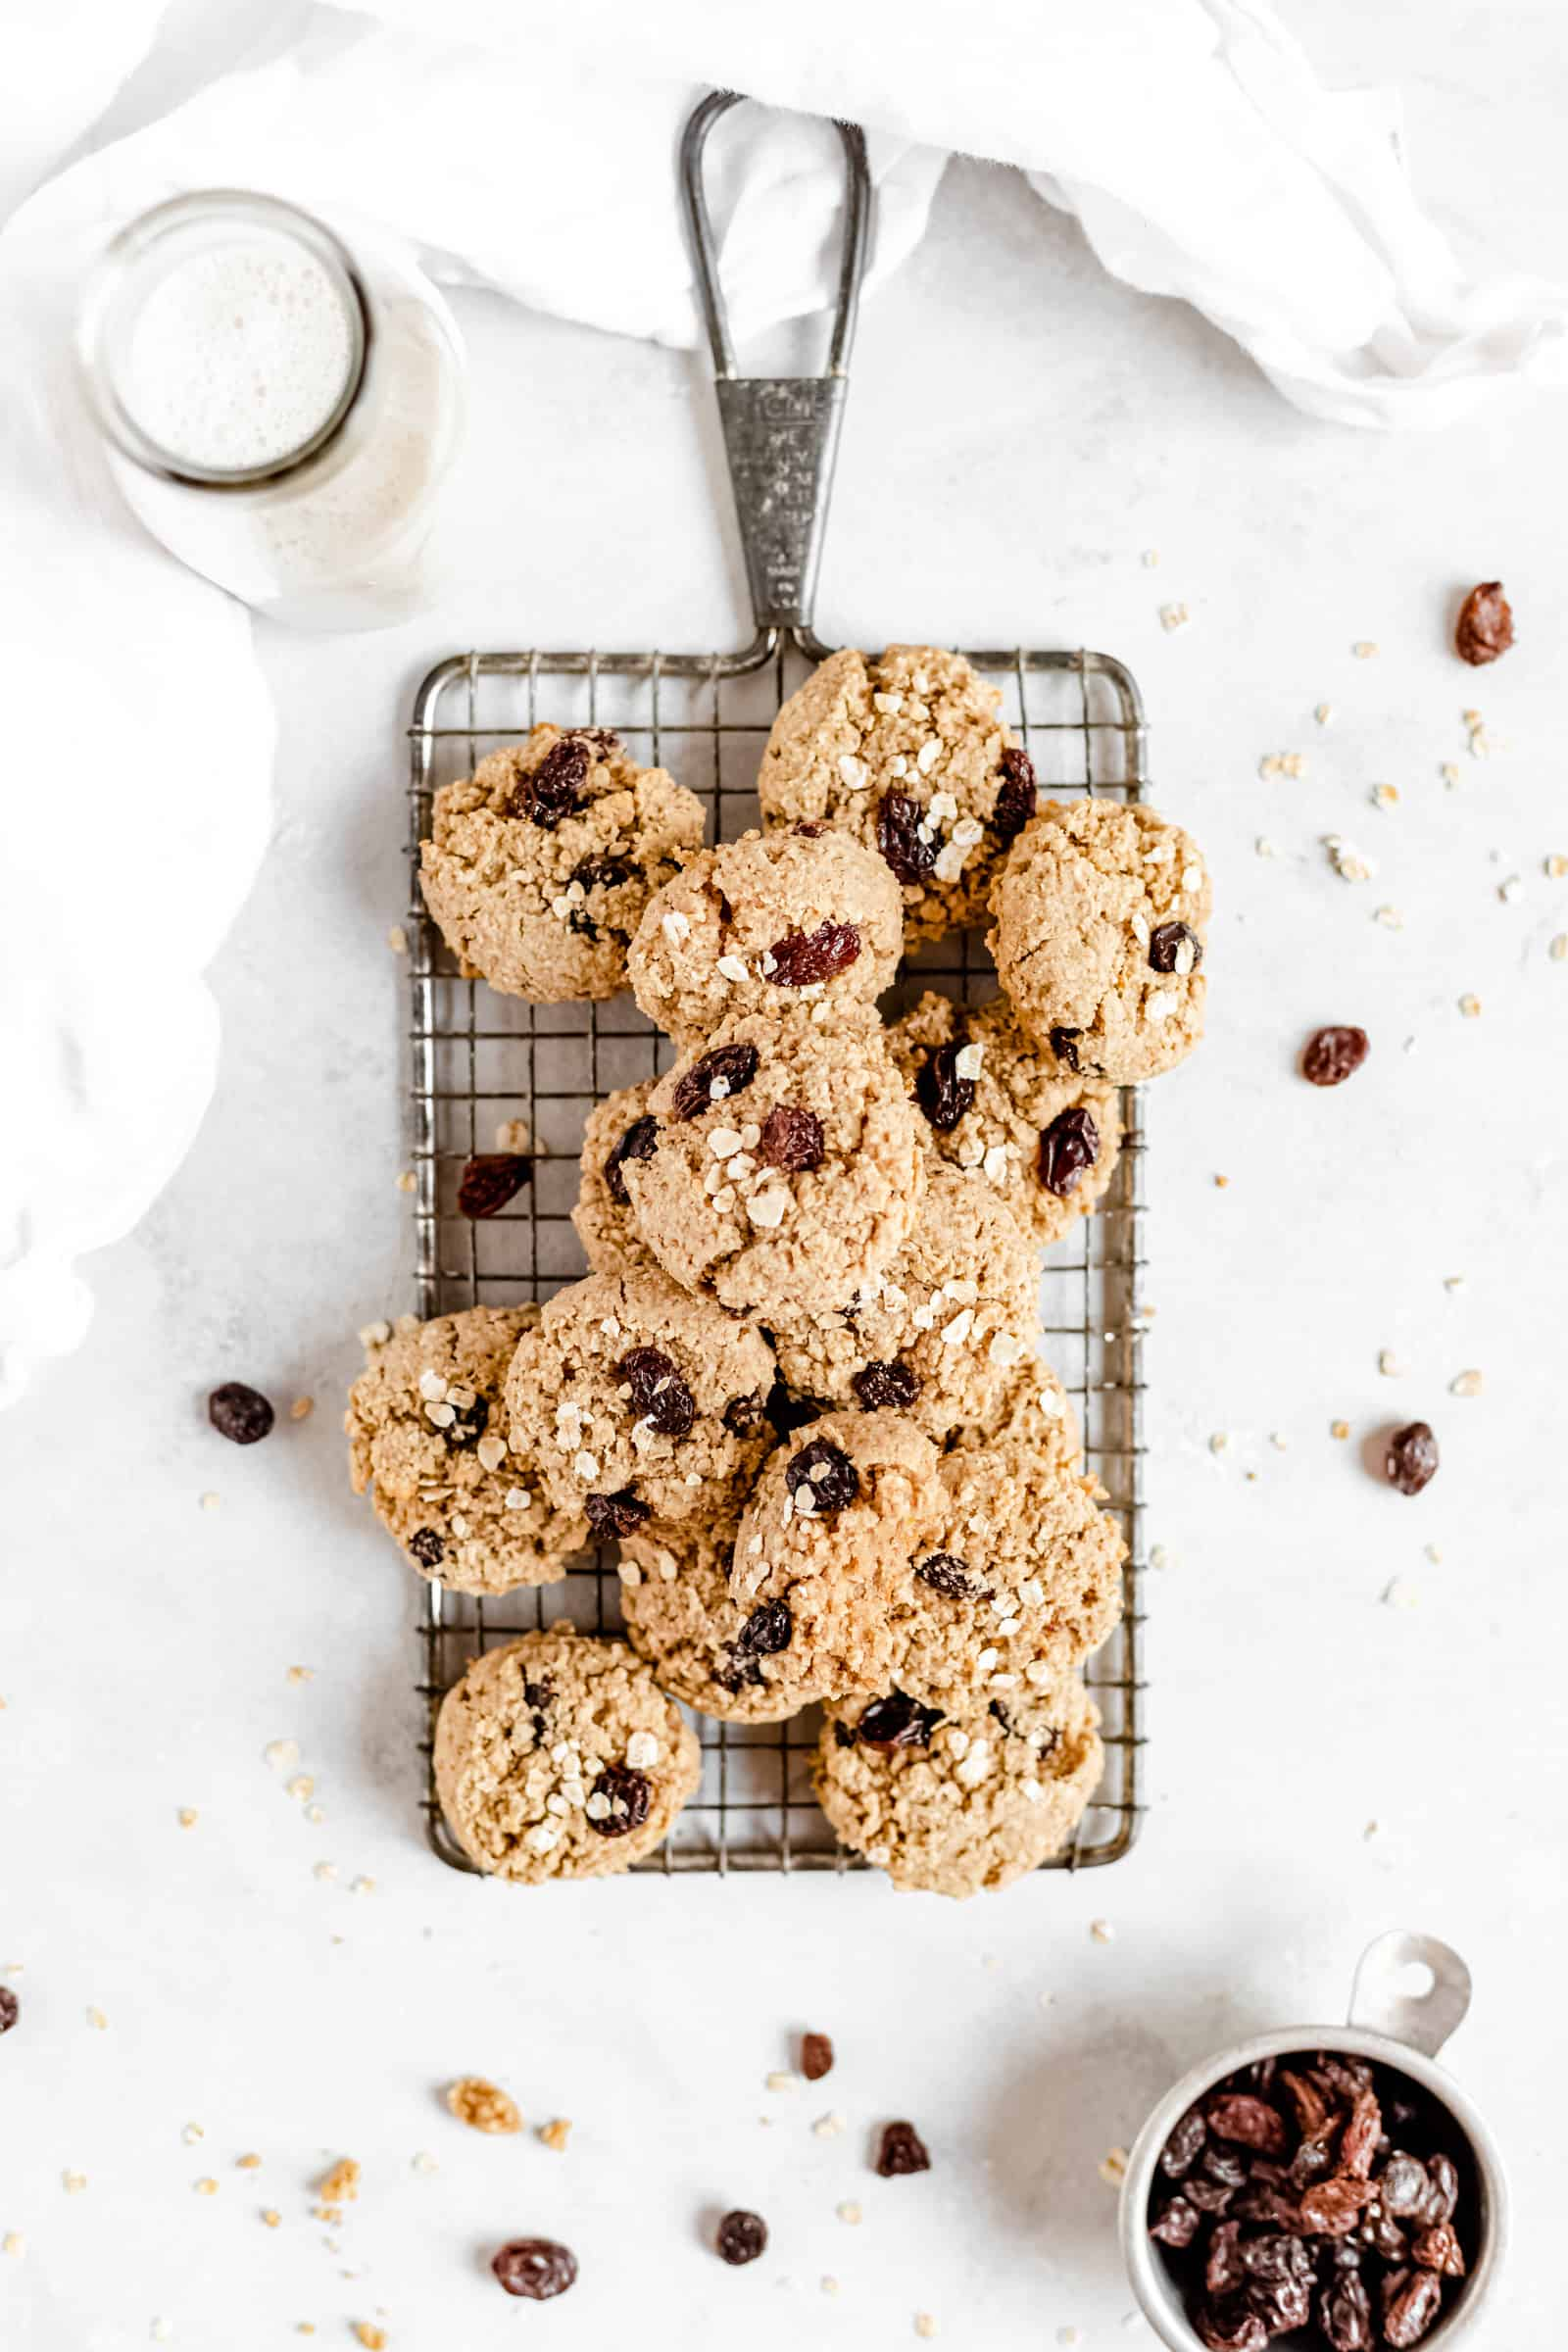 These Healthy Chewy Gluten Free Oatmeal Raisin Cookies are the best ever! They're incredibly soft, chewy, and perfectly spiced with a hint of cinnamon. #vegan #glutenfree #oatmealraisin #cookies #healthycookies #almondflour #bakedambrosia